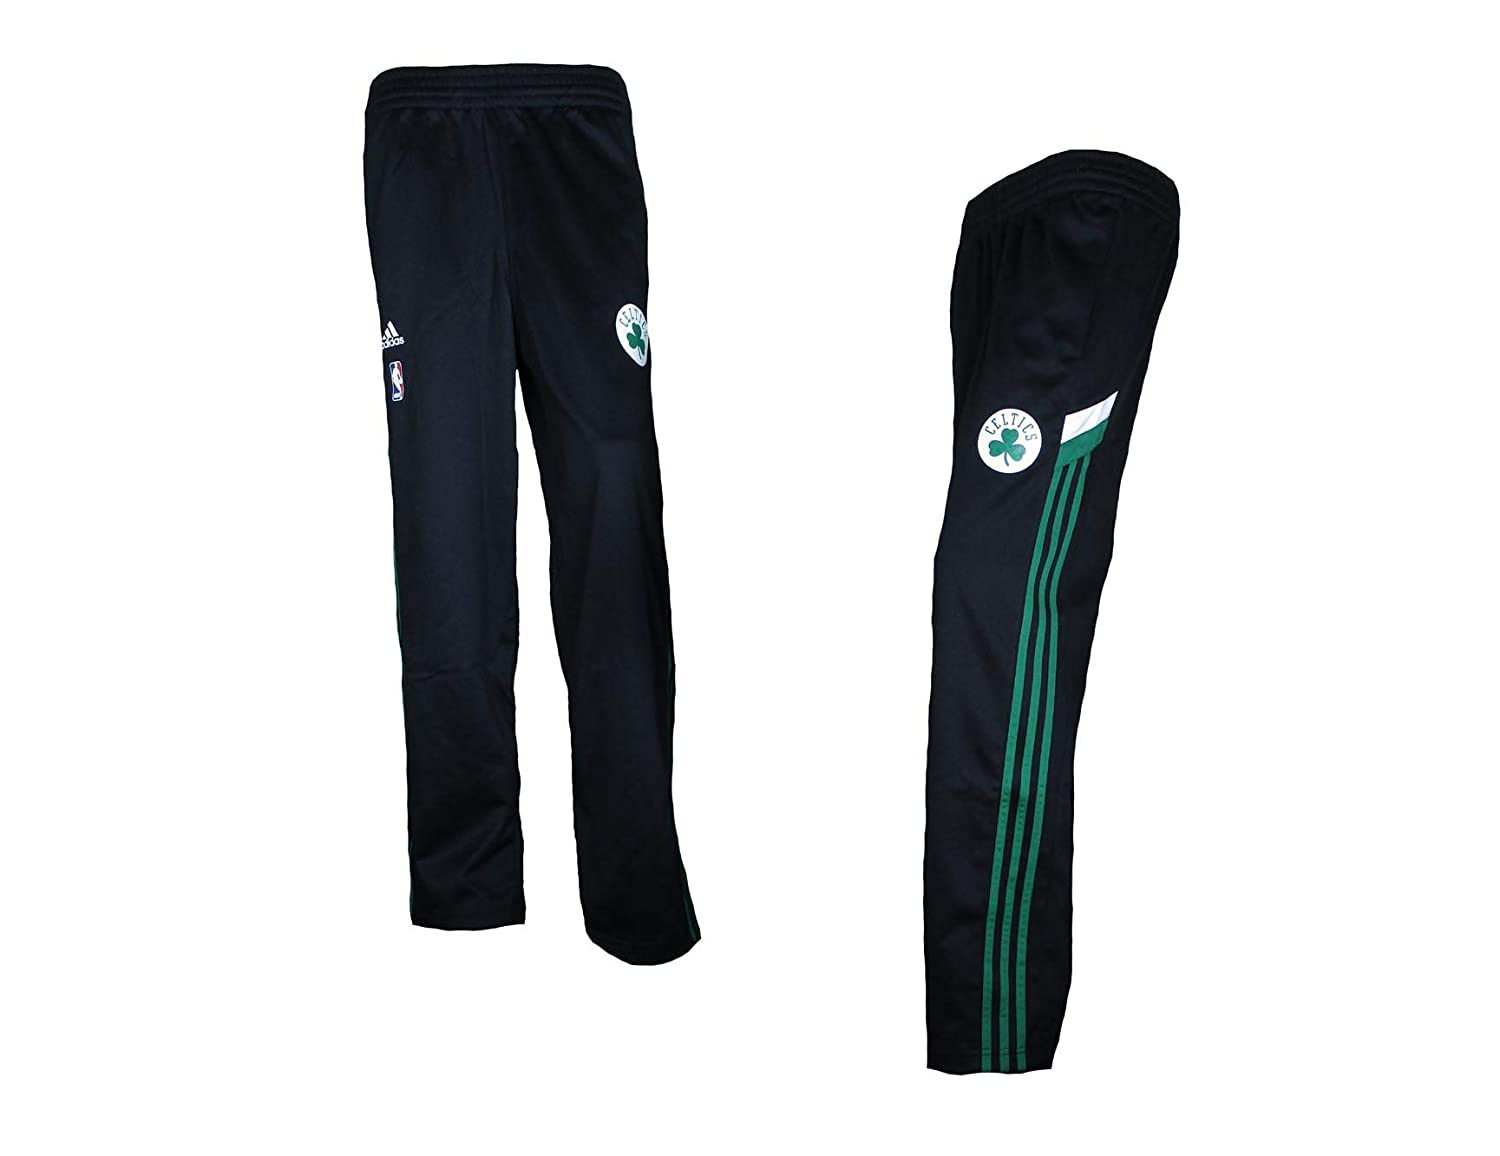 adidas Trainingshose Boston Celtics 2013: : Sport